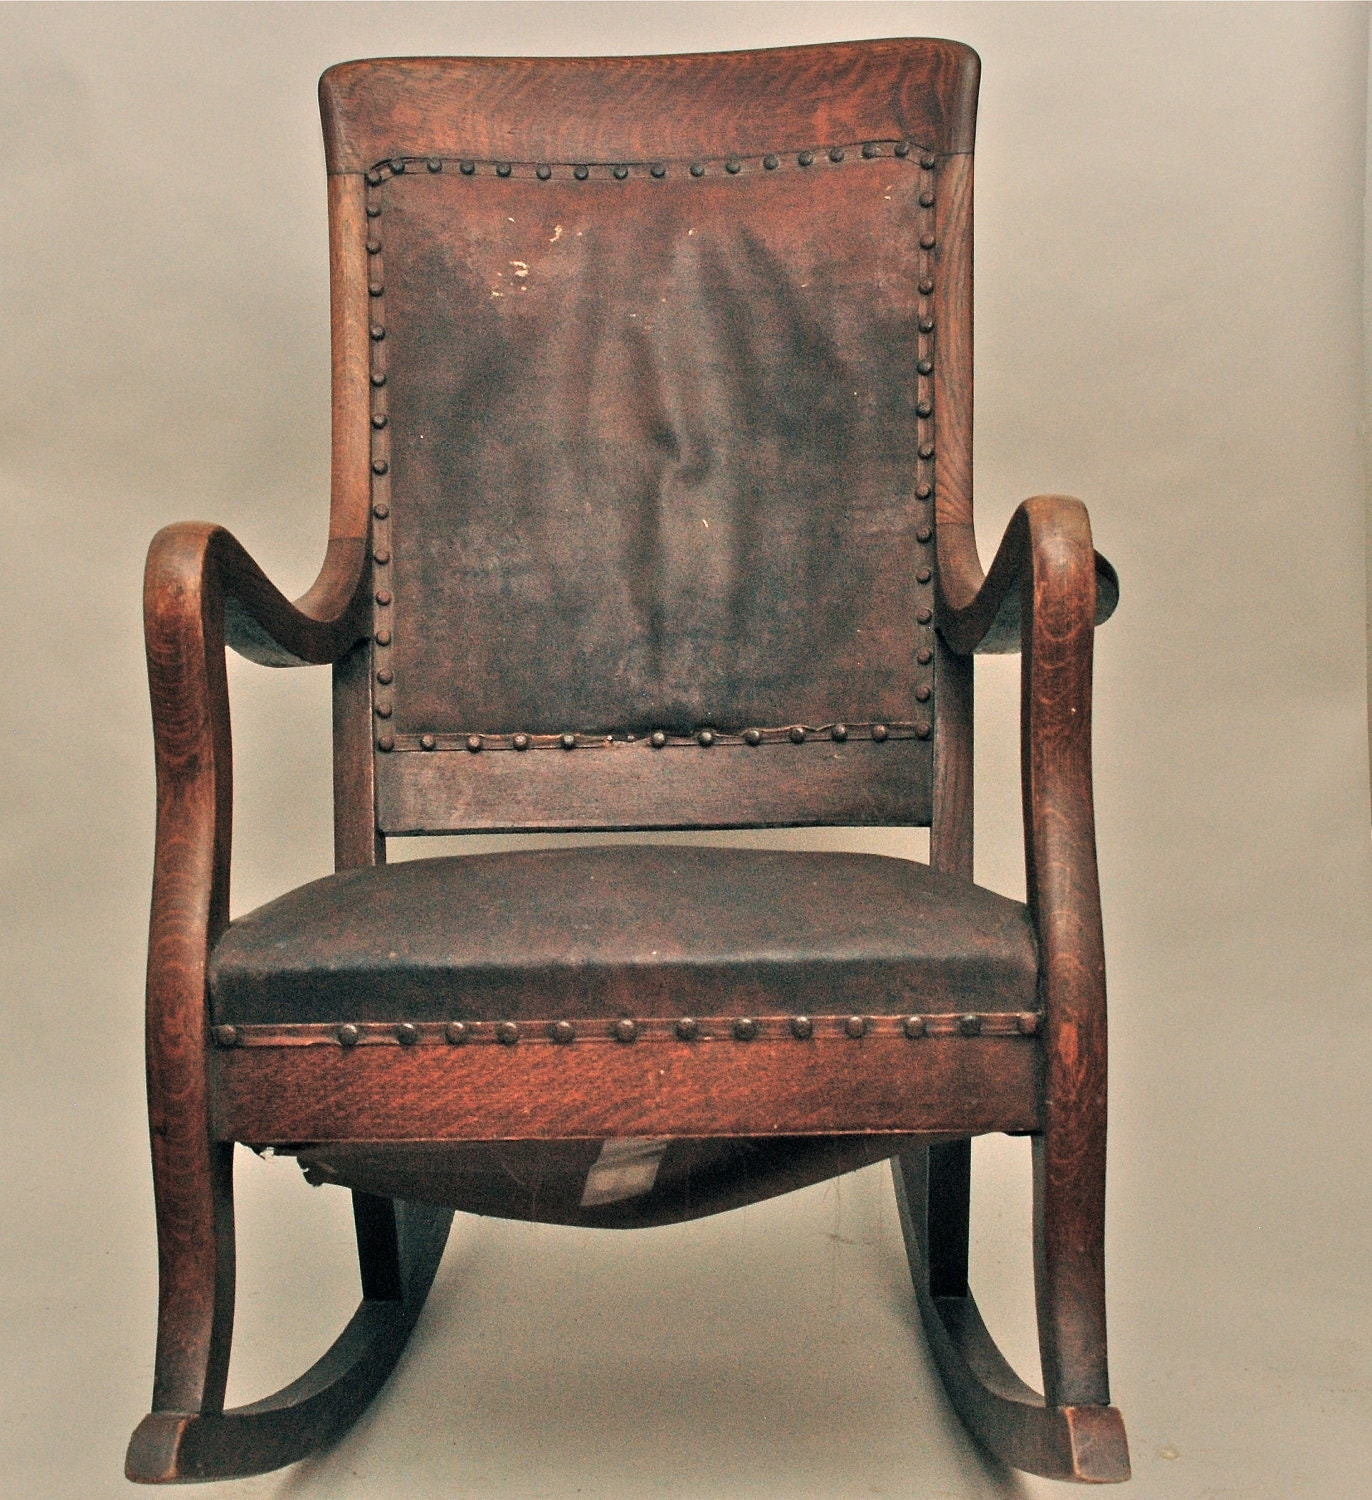 antique wooden chairs pictures olive green chair high back oak rocking with leather seat and